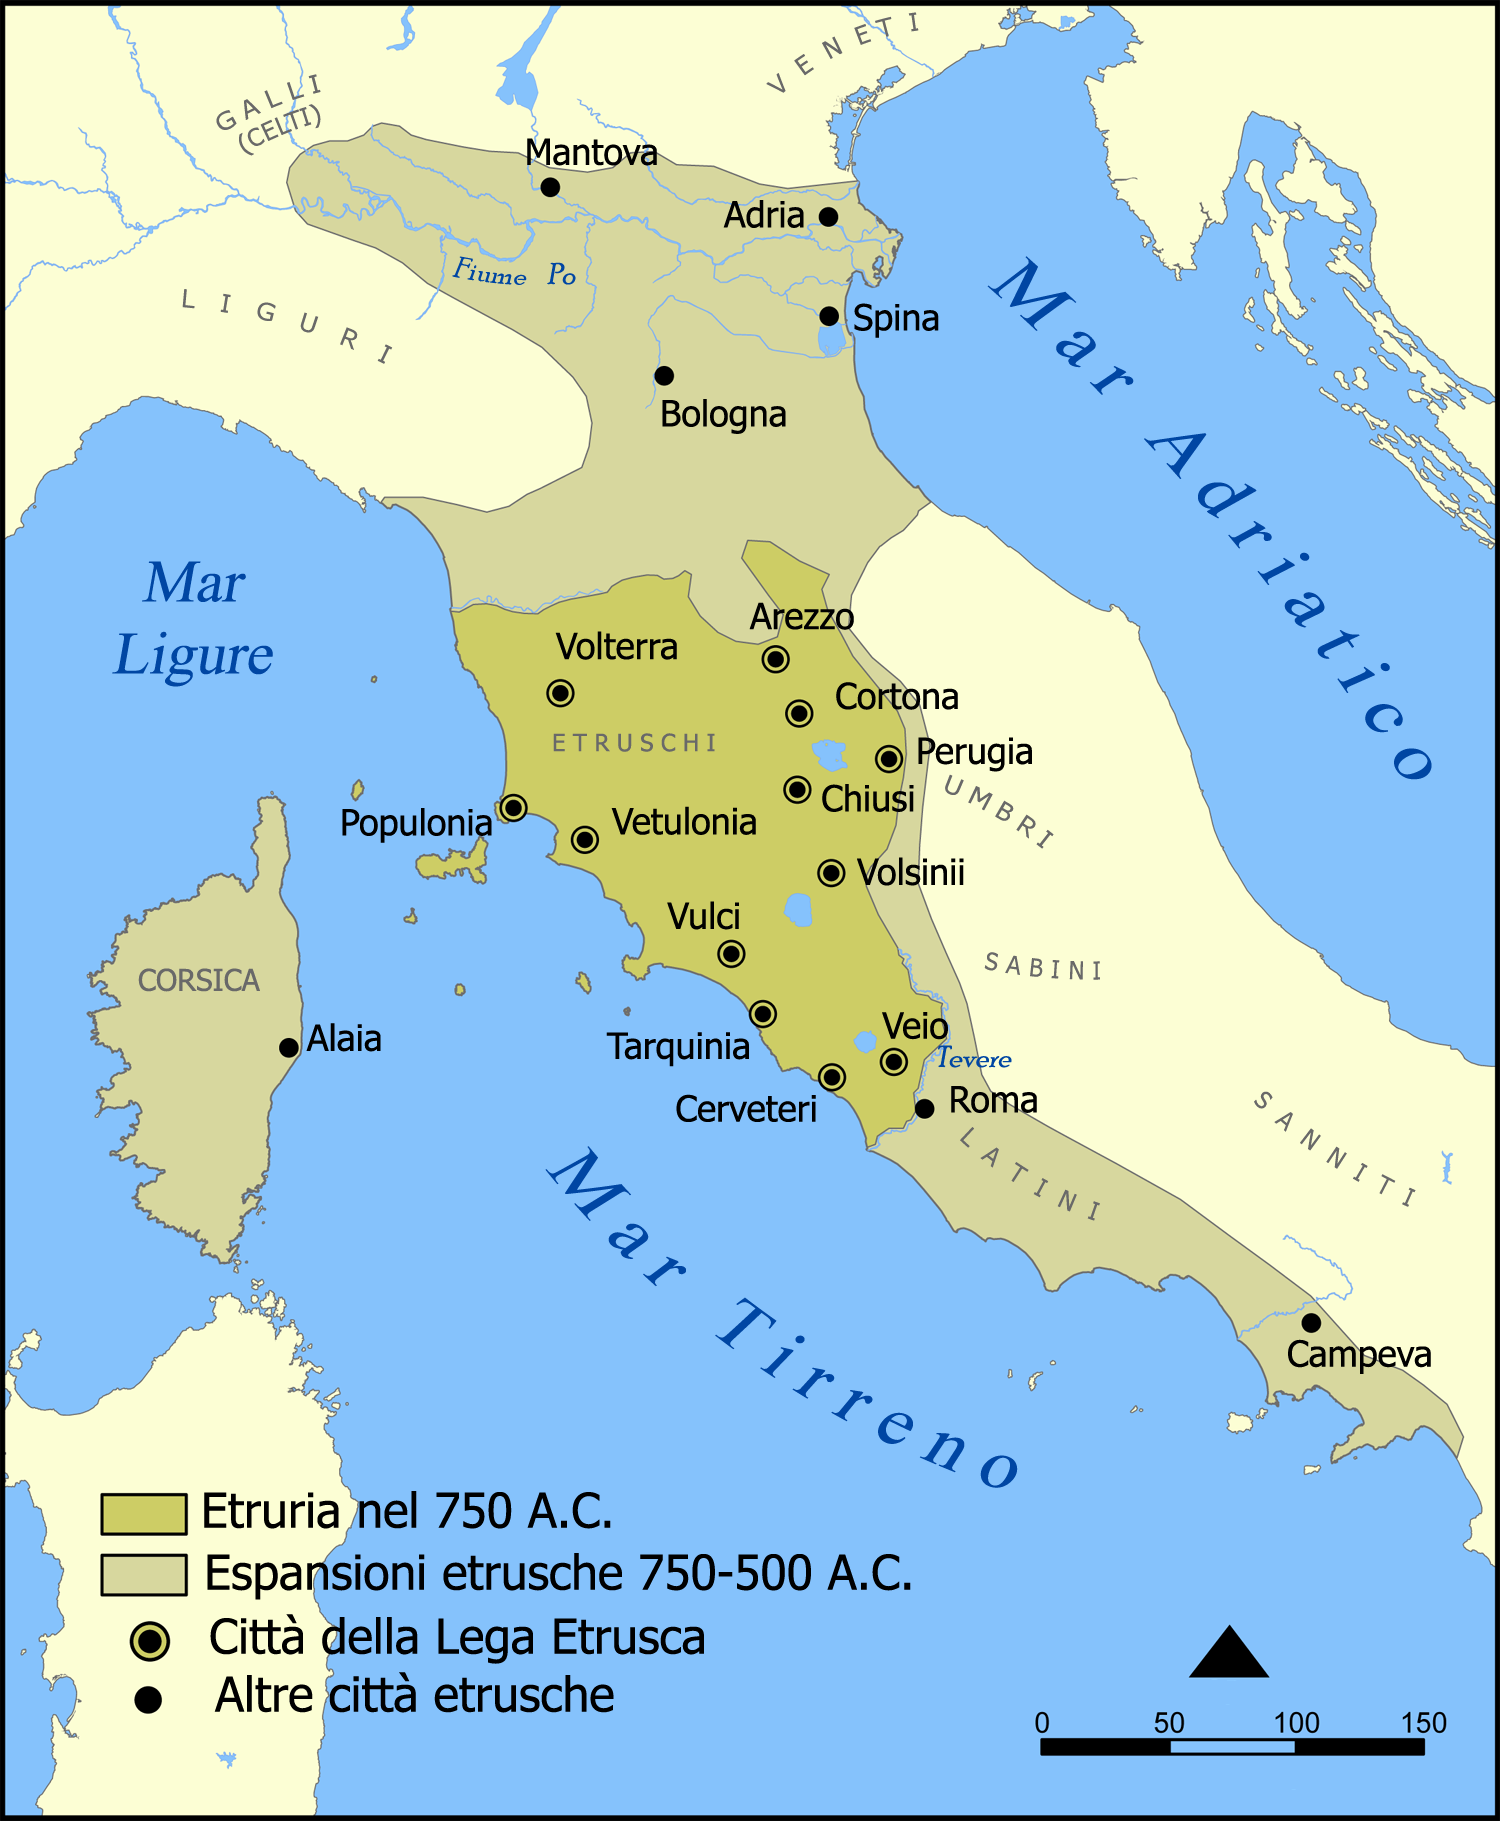 Cartina Geografica Orvieto.History Of The Etruscans Visualizing Vulci